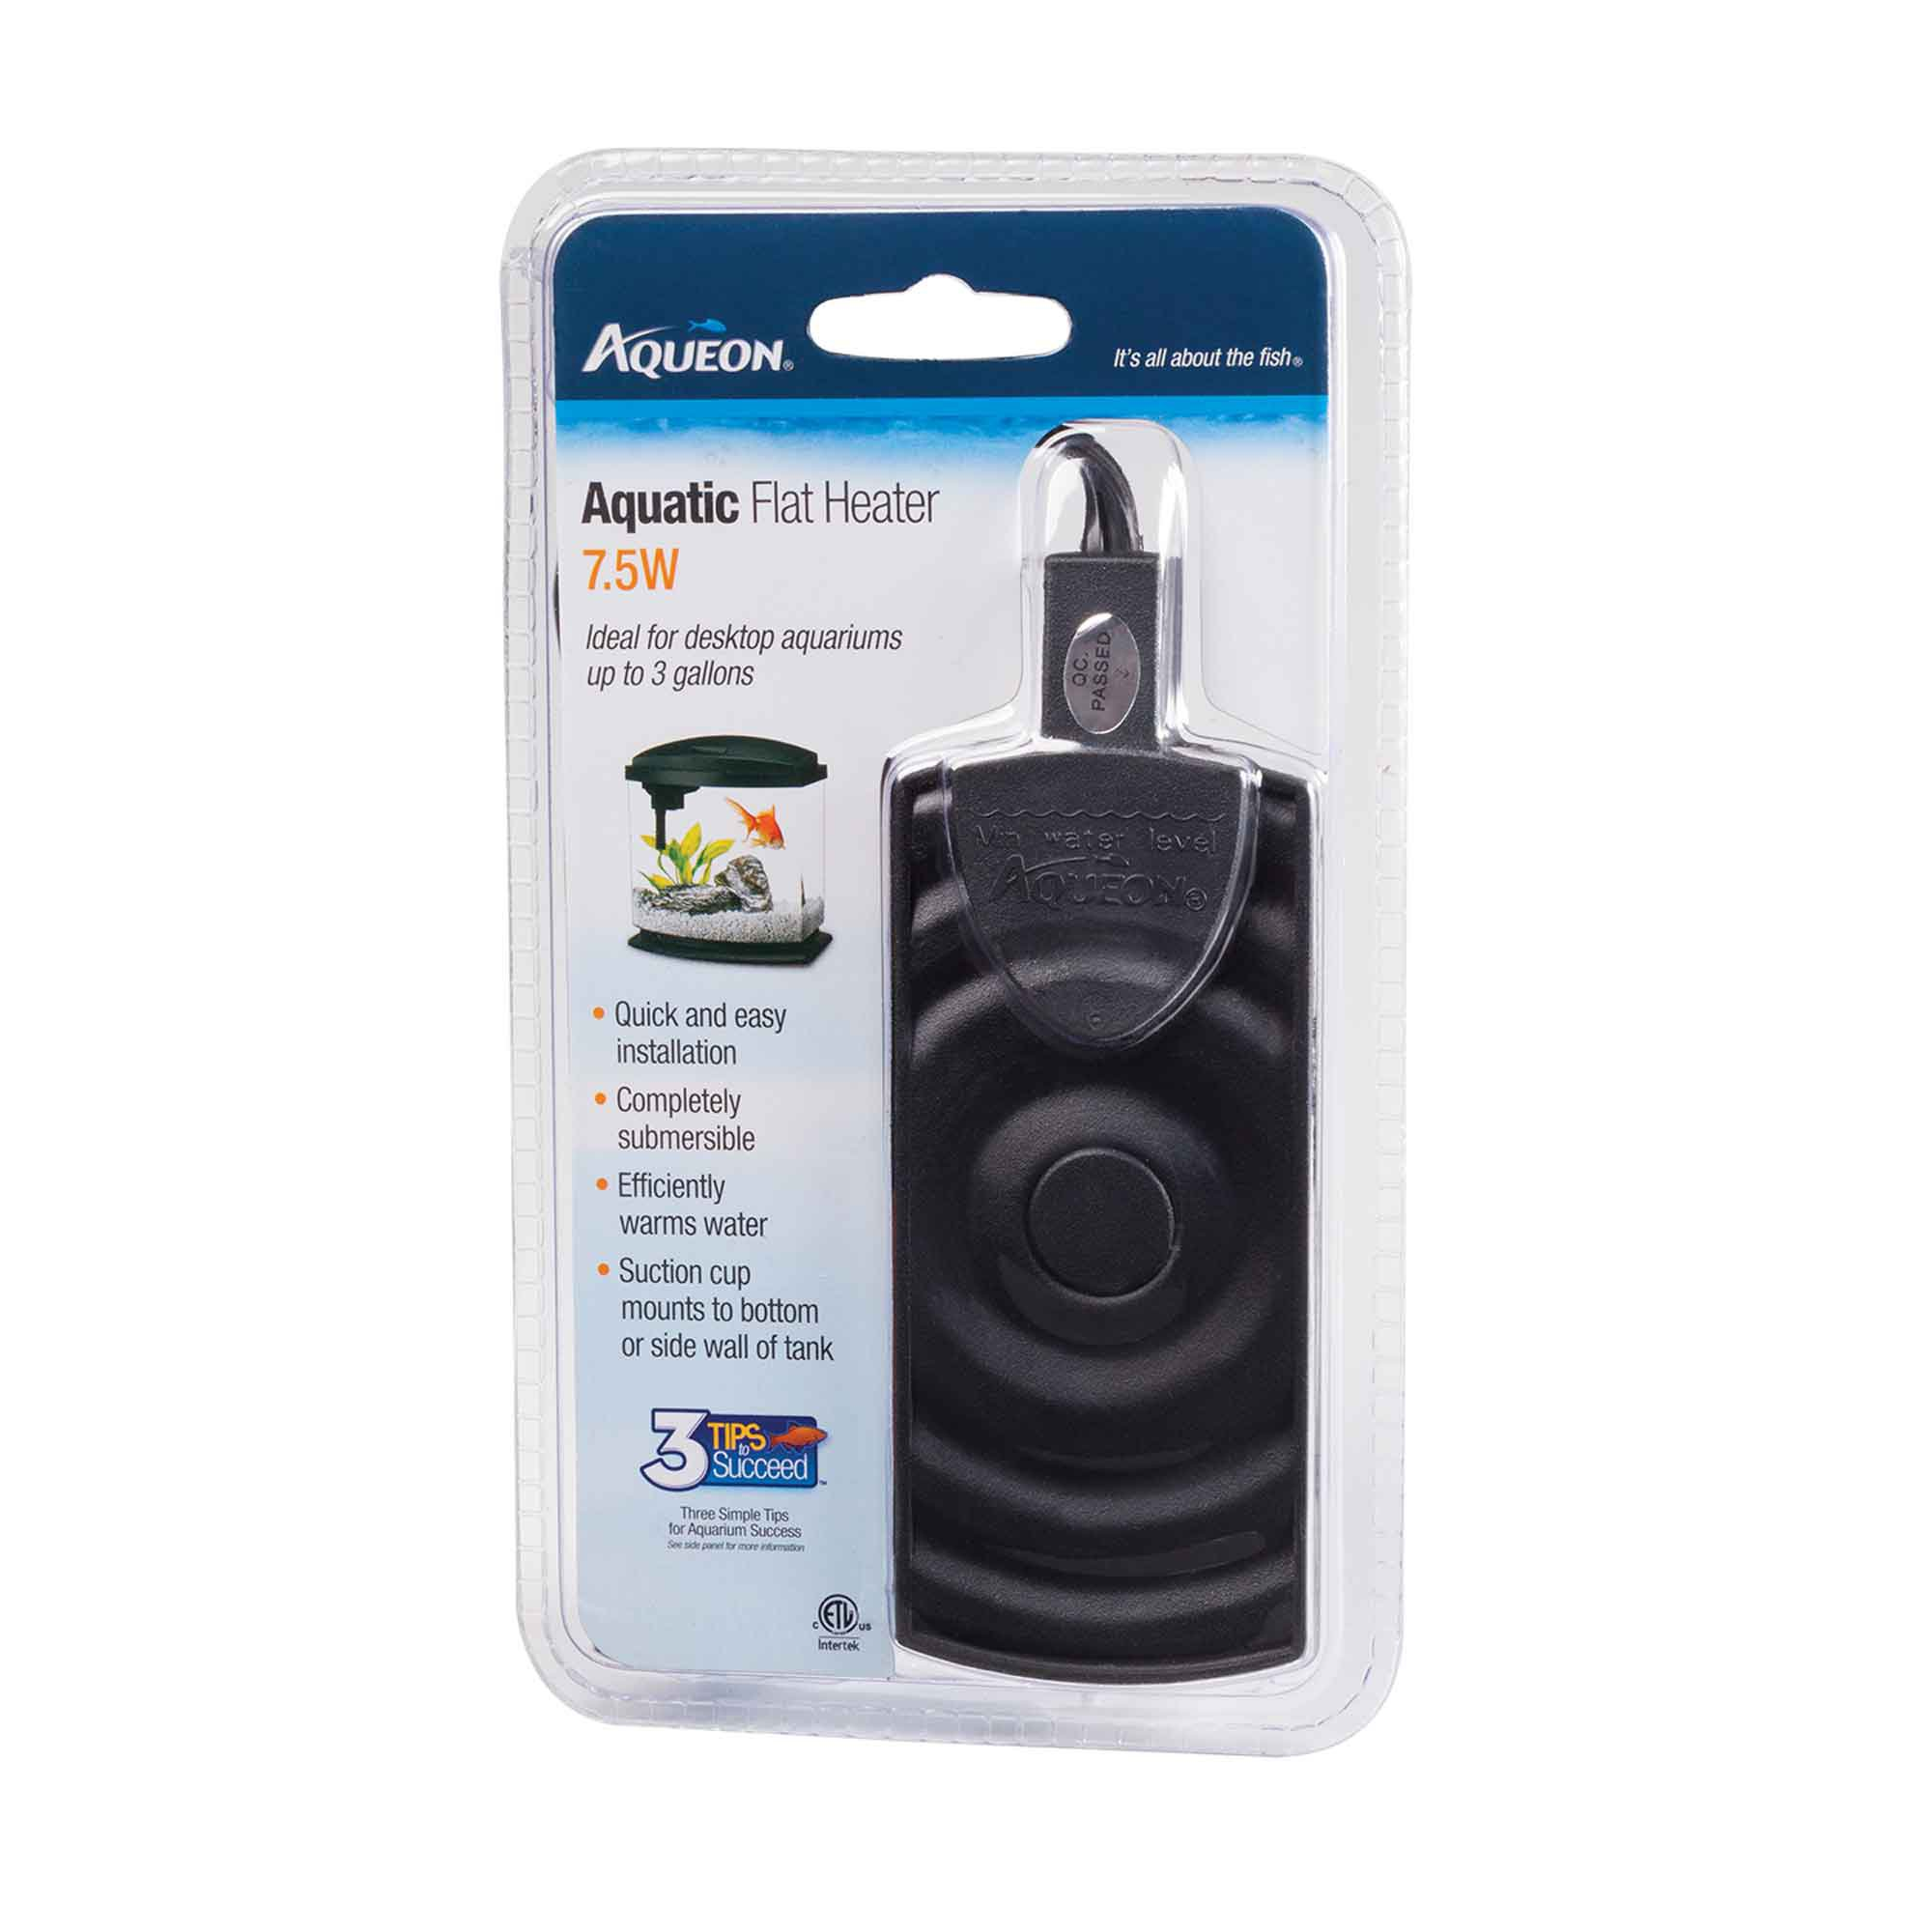 Aqueon Aquatic Flat Heater 7 5w Petco